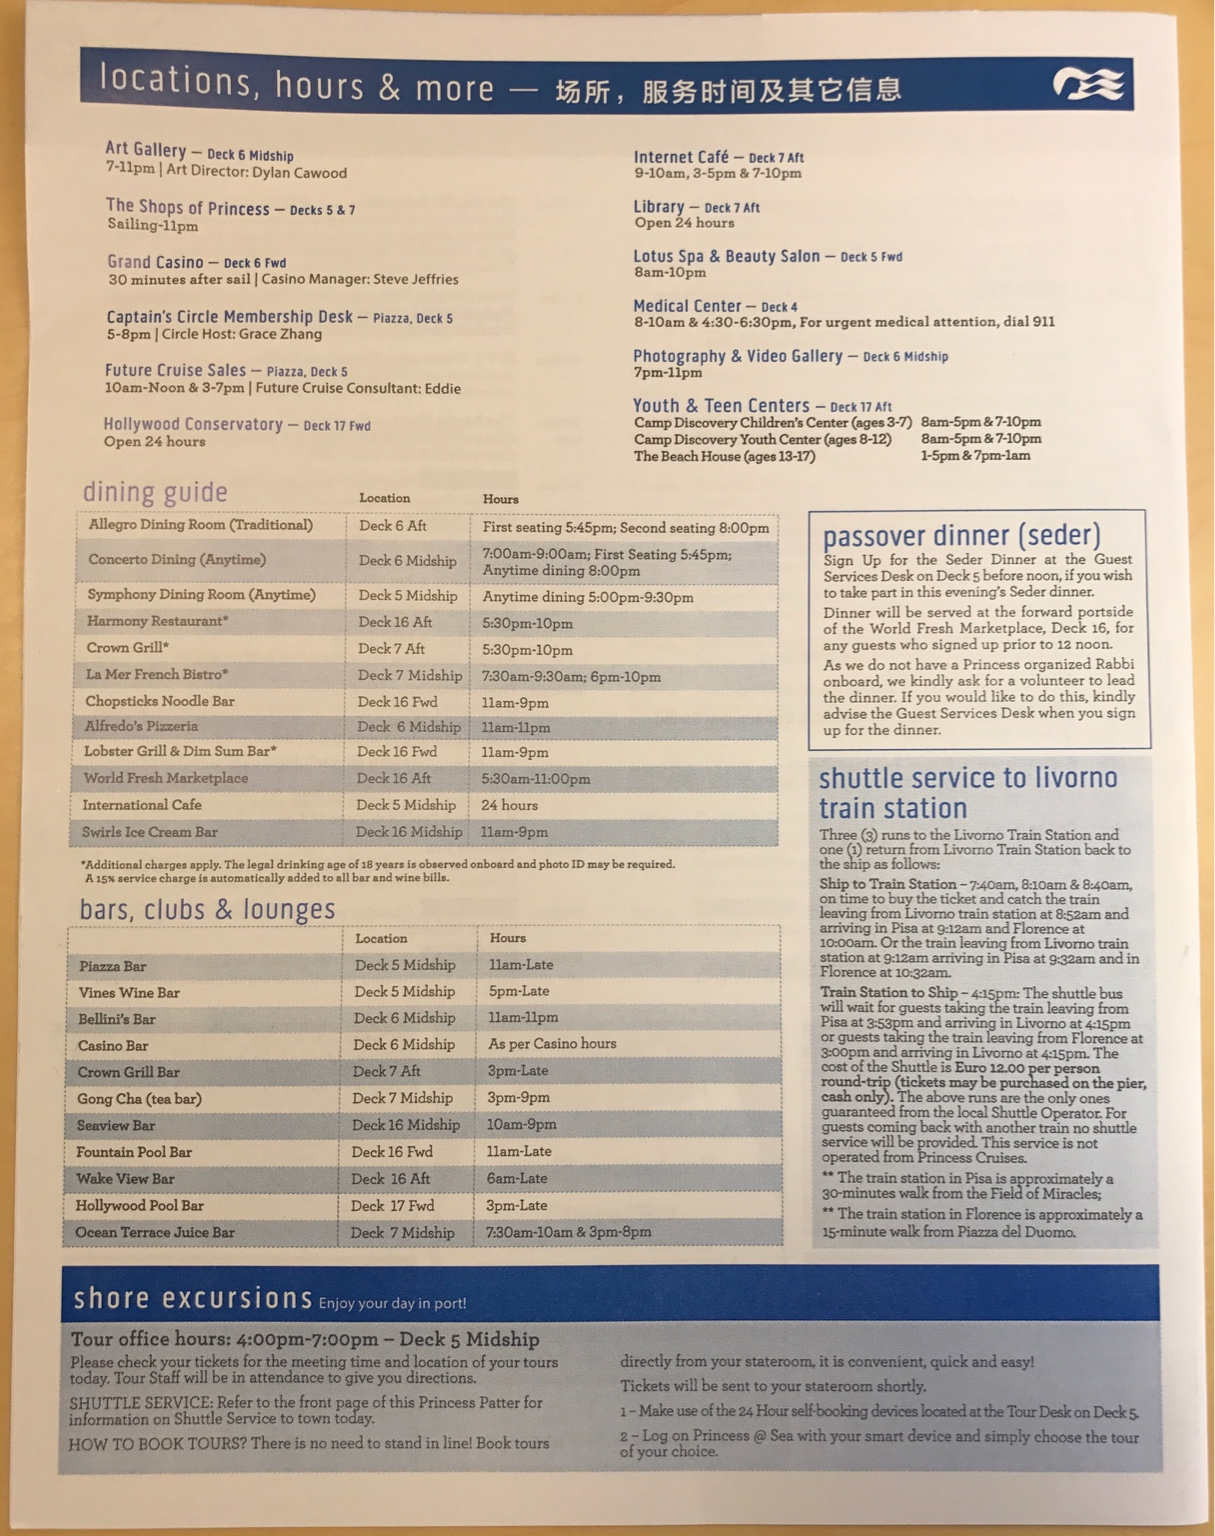 Live From The Majestic Princess 7 Day Rome Barcelona 4917 Page 5